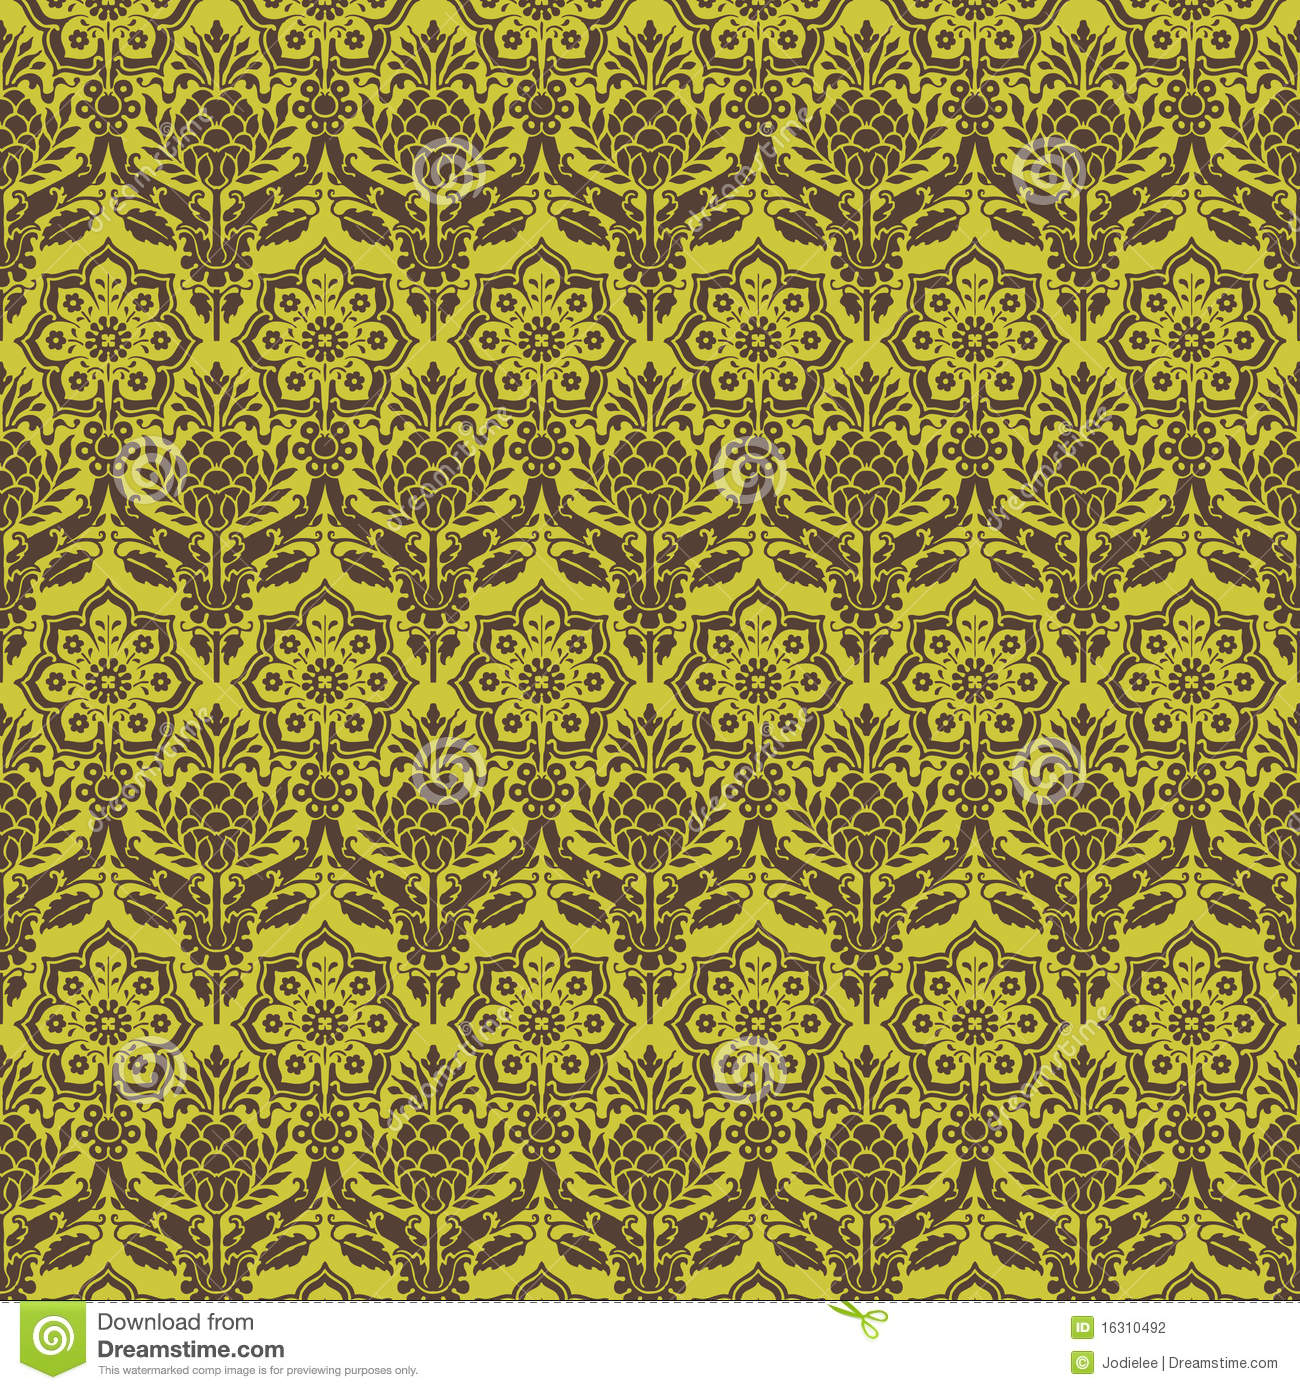 Green and white floral pattern - photo#45